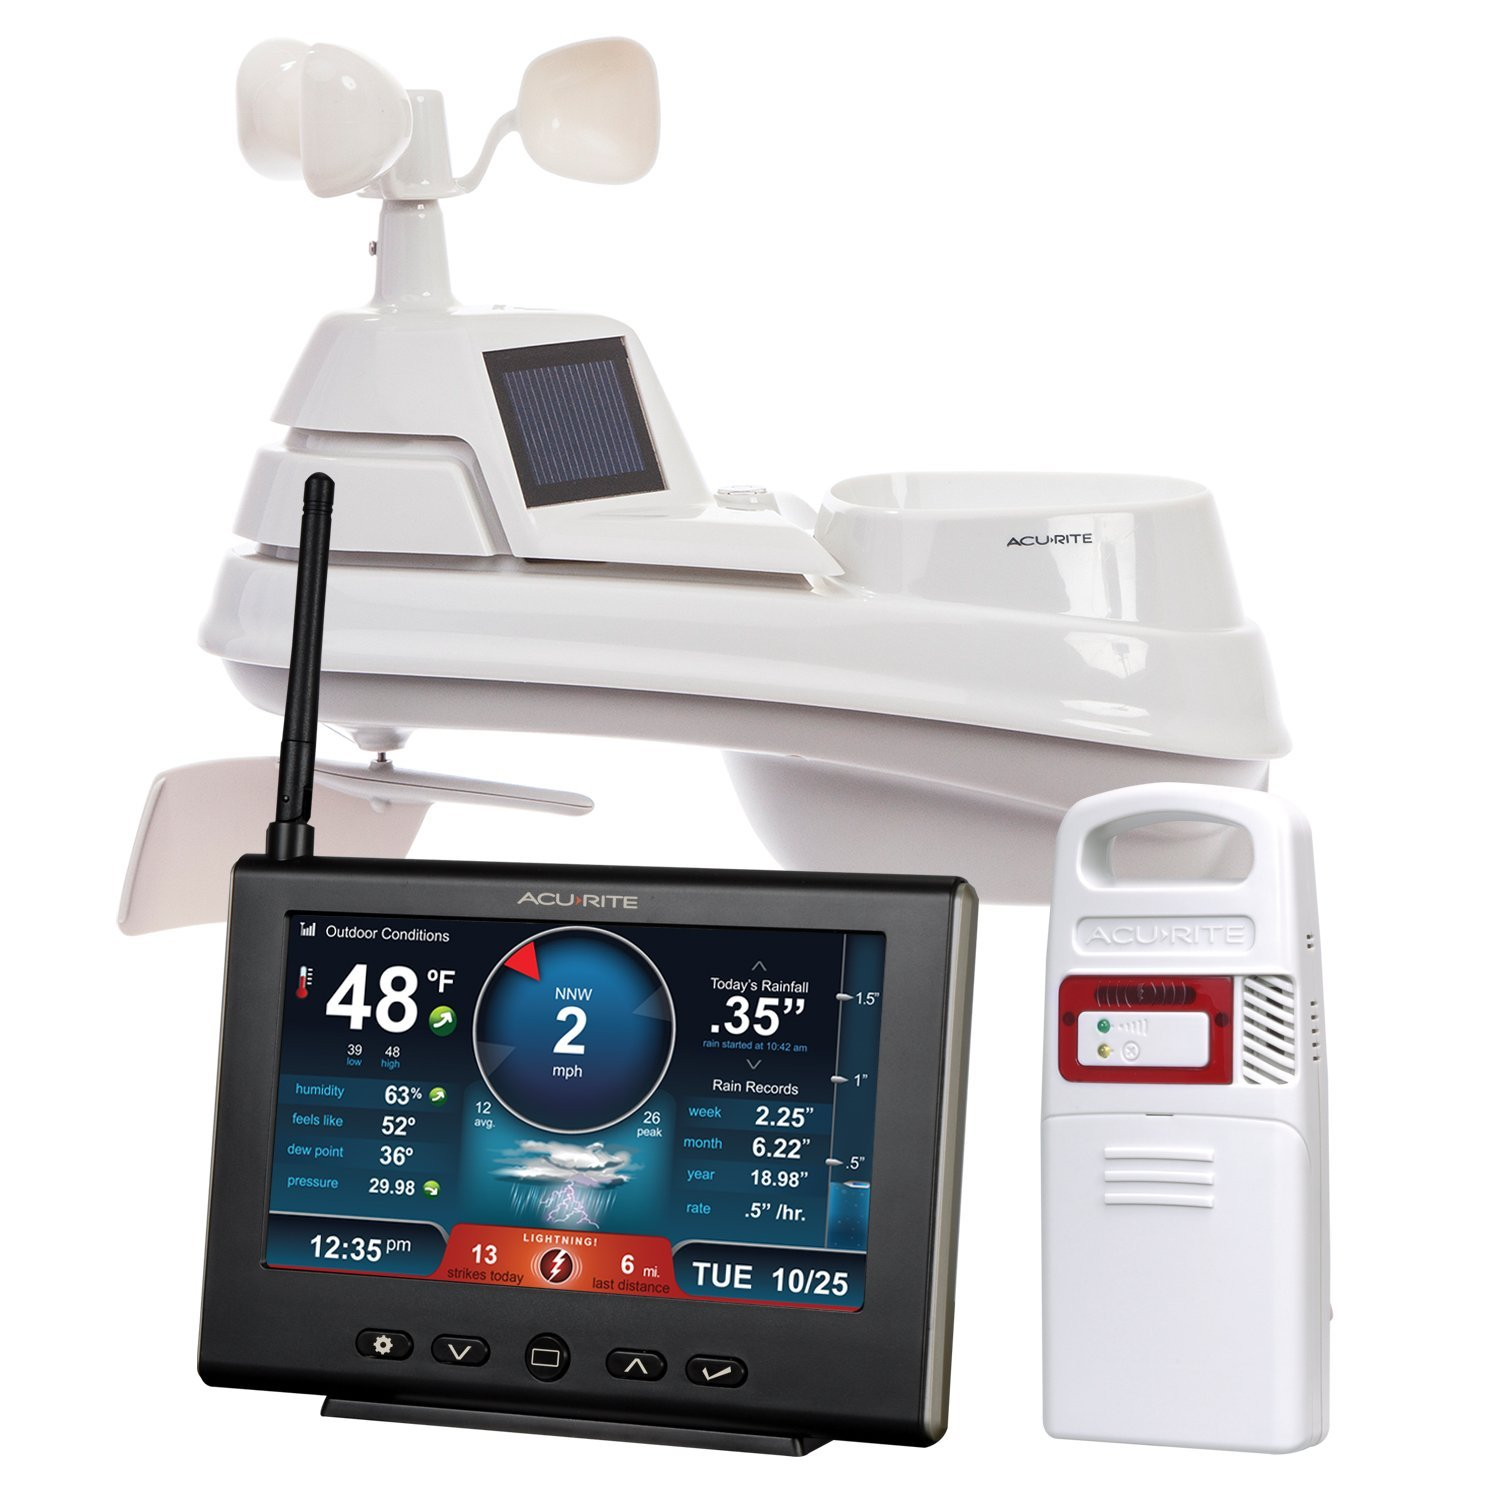 AcuRite 01024 Pro Weather Station with Lightning Detector